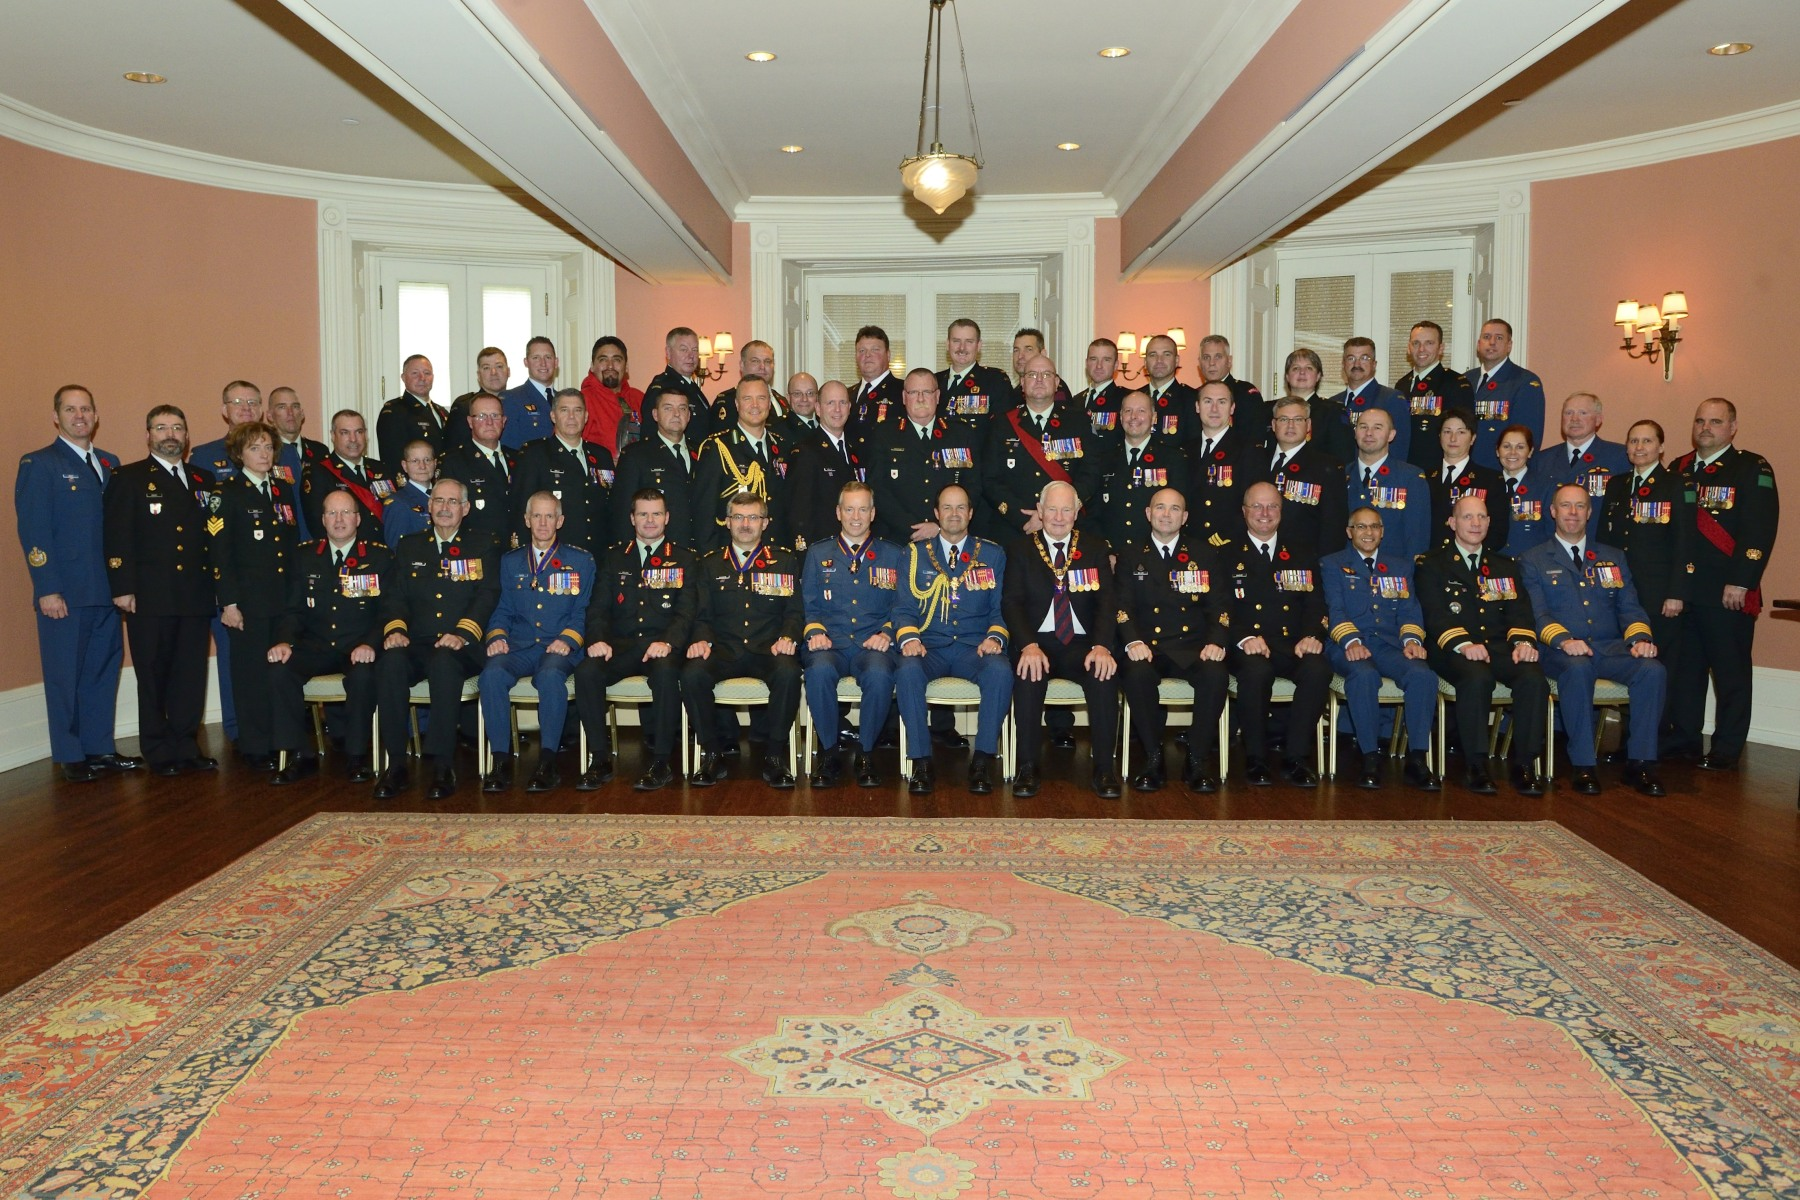 The Governor General and the Chief of the Defence Staff are pictured with the 50 recipients.